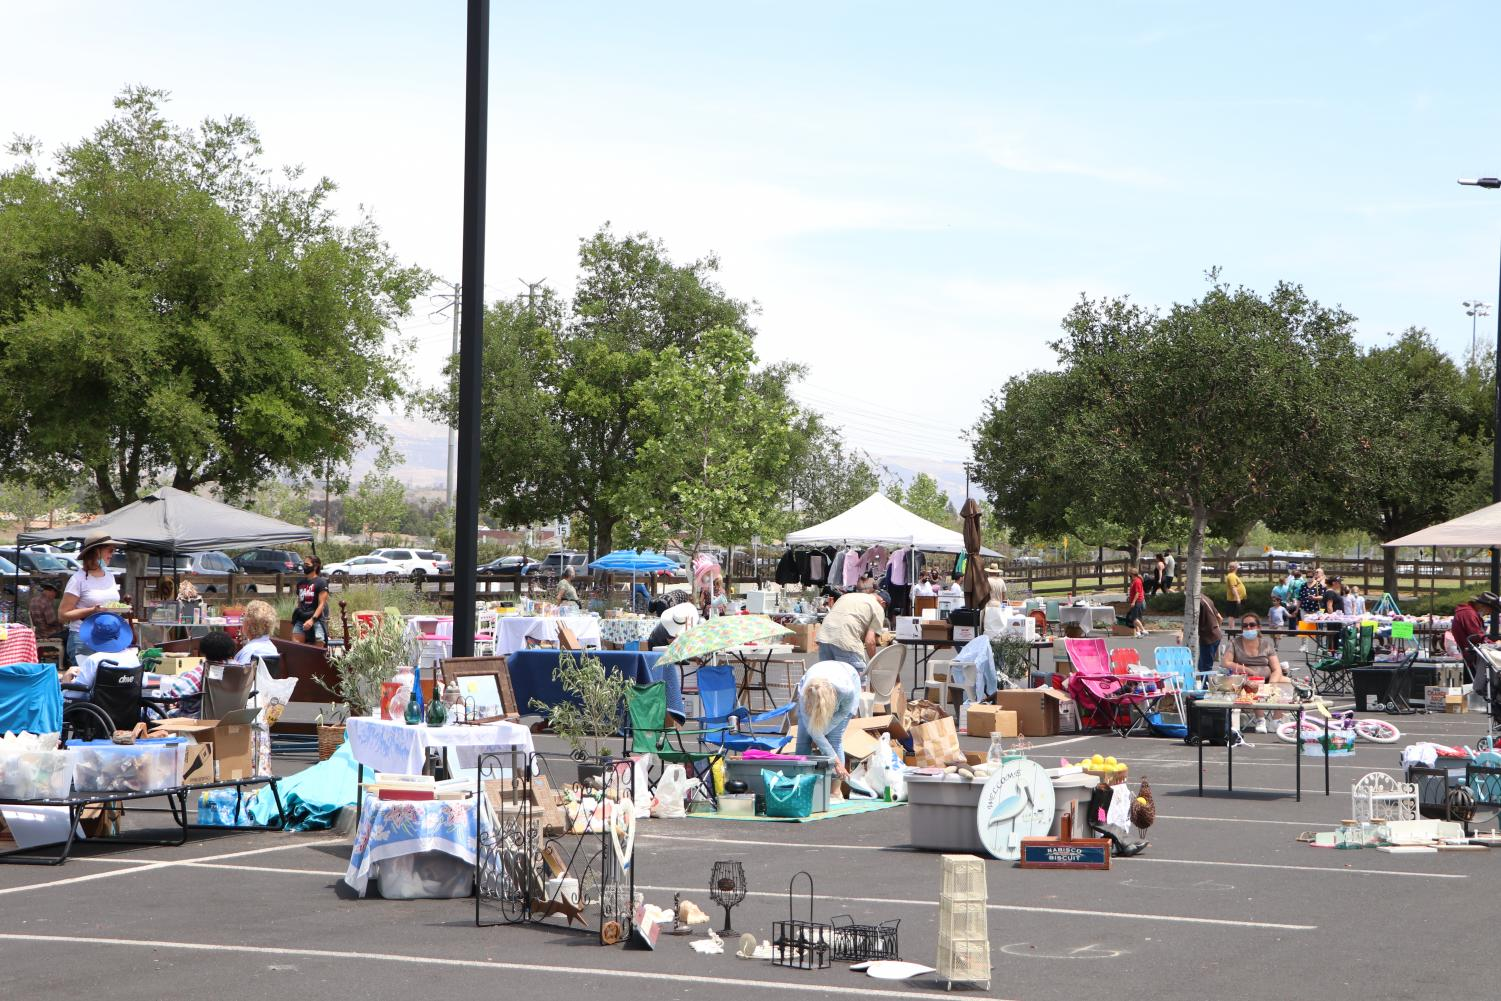 City of Moorpark hosts 'Moorpark Earth Festival and Community Yard Sale' at